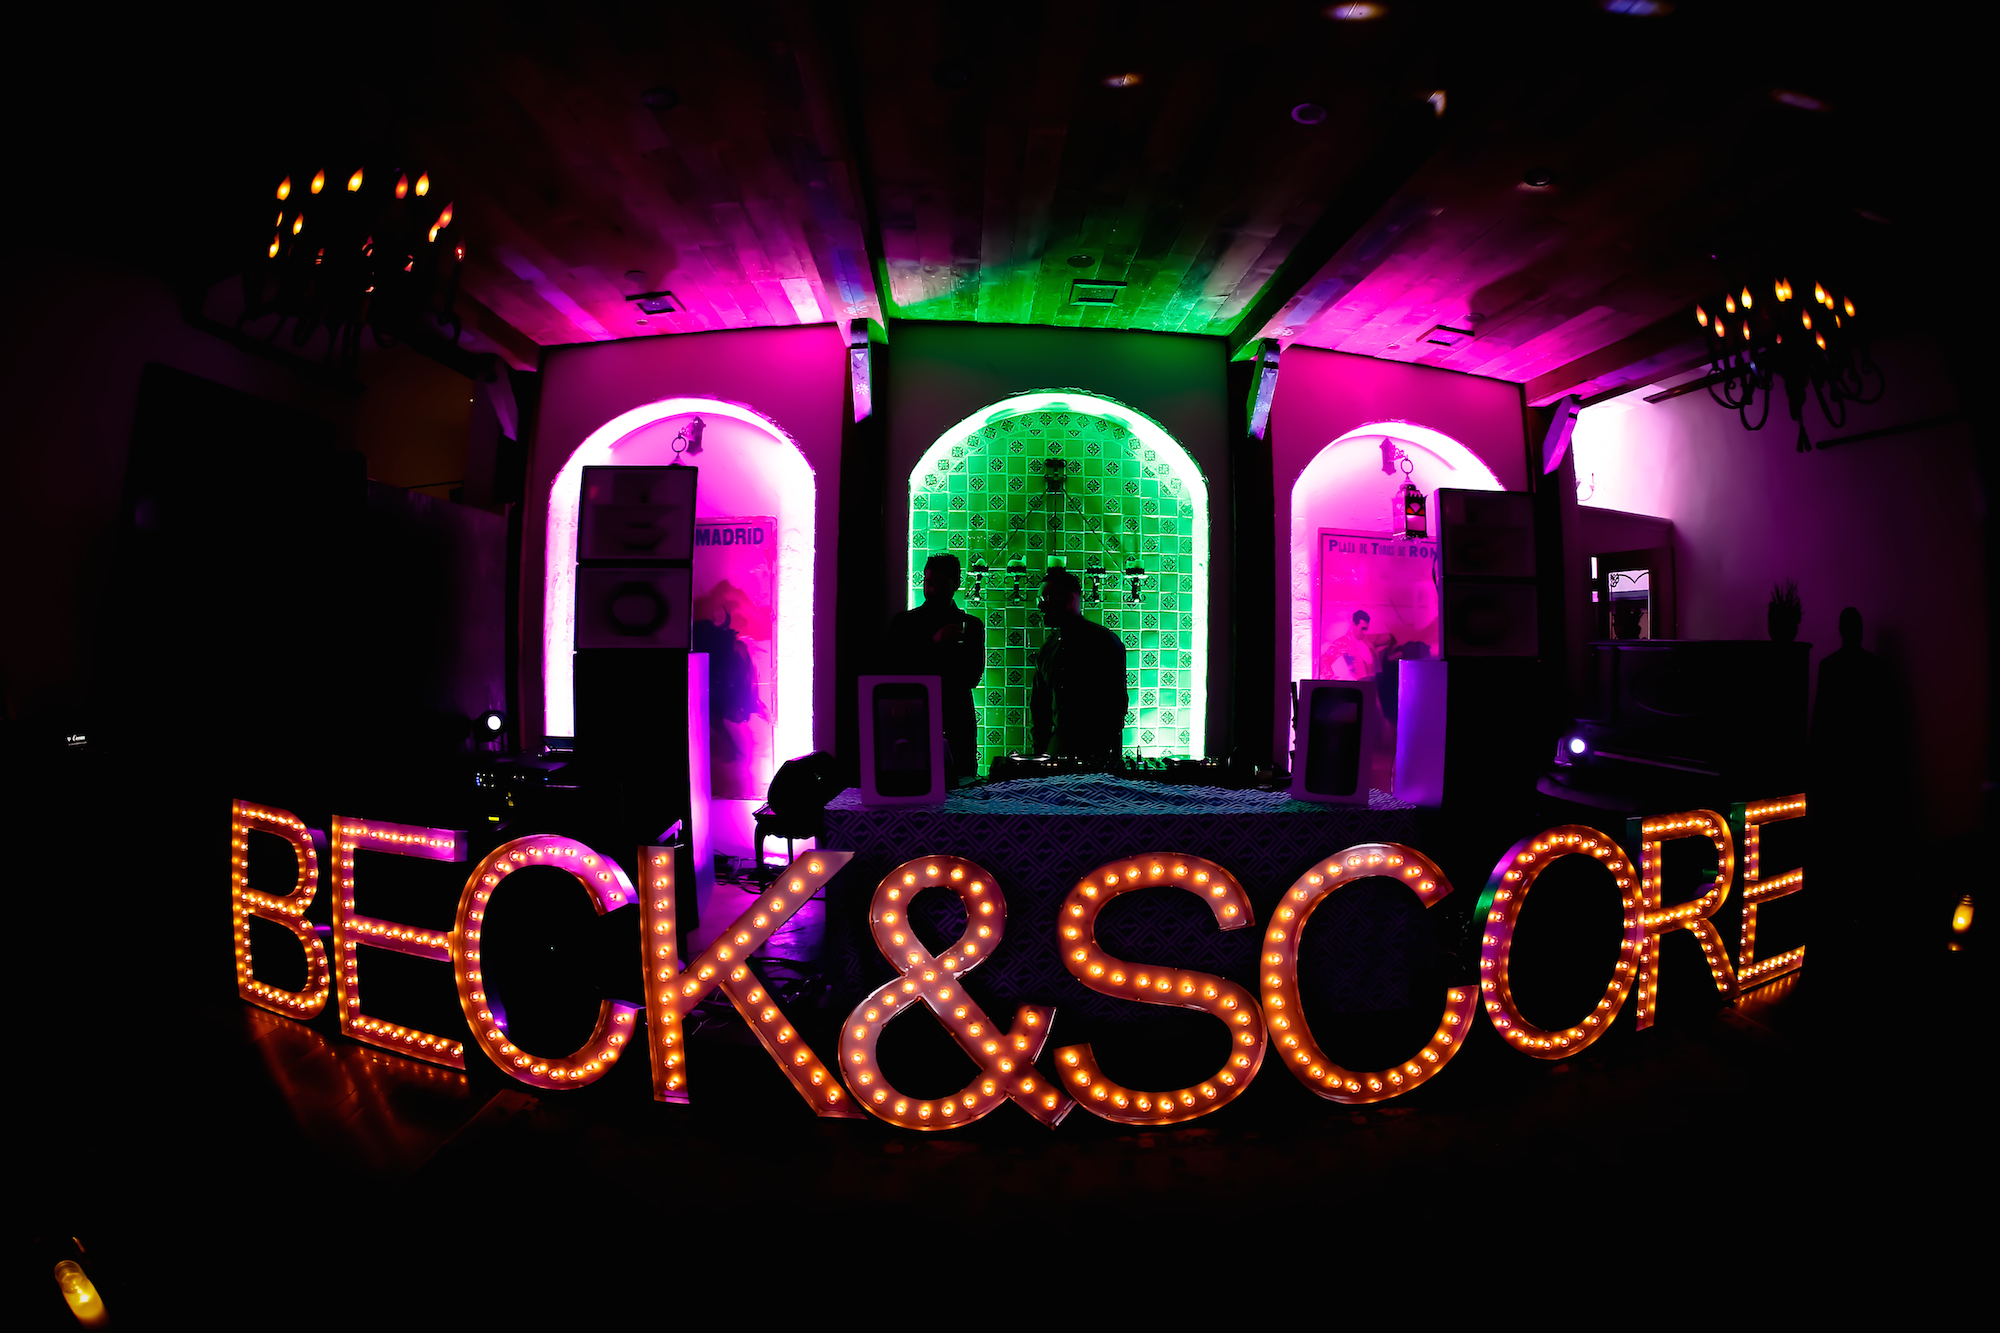 Beck & Score FIFA World Cup 2014 Launch Party Sign